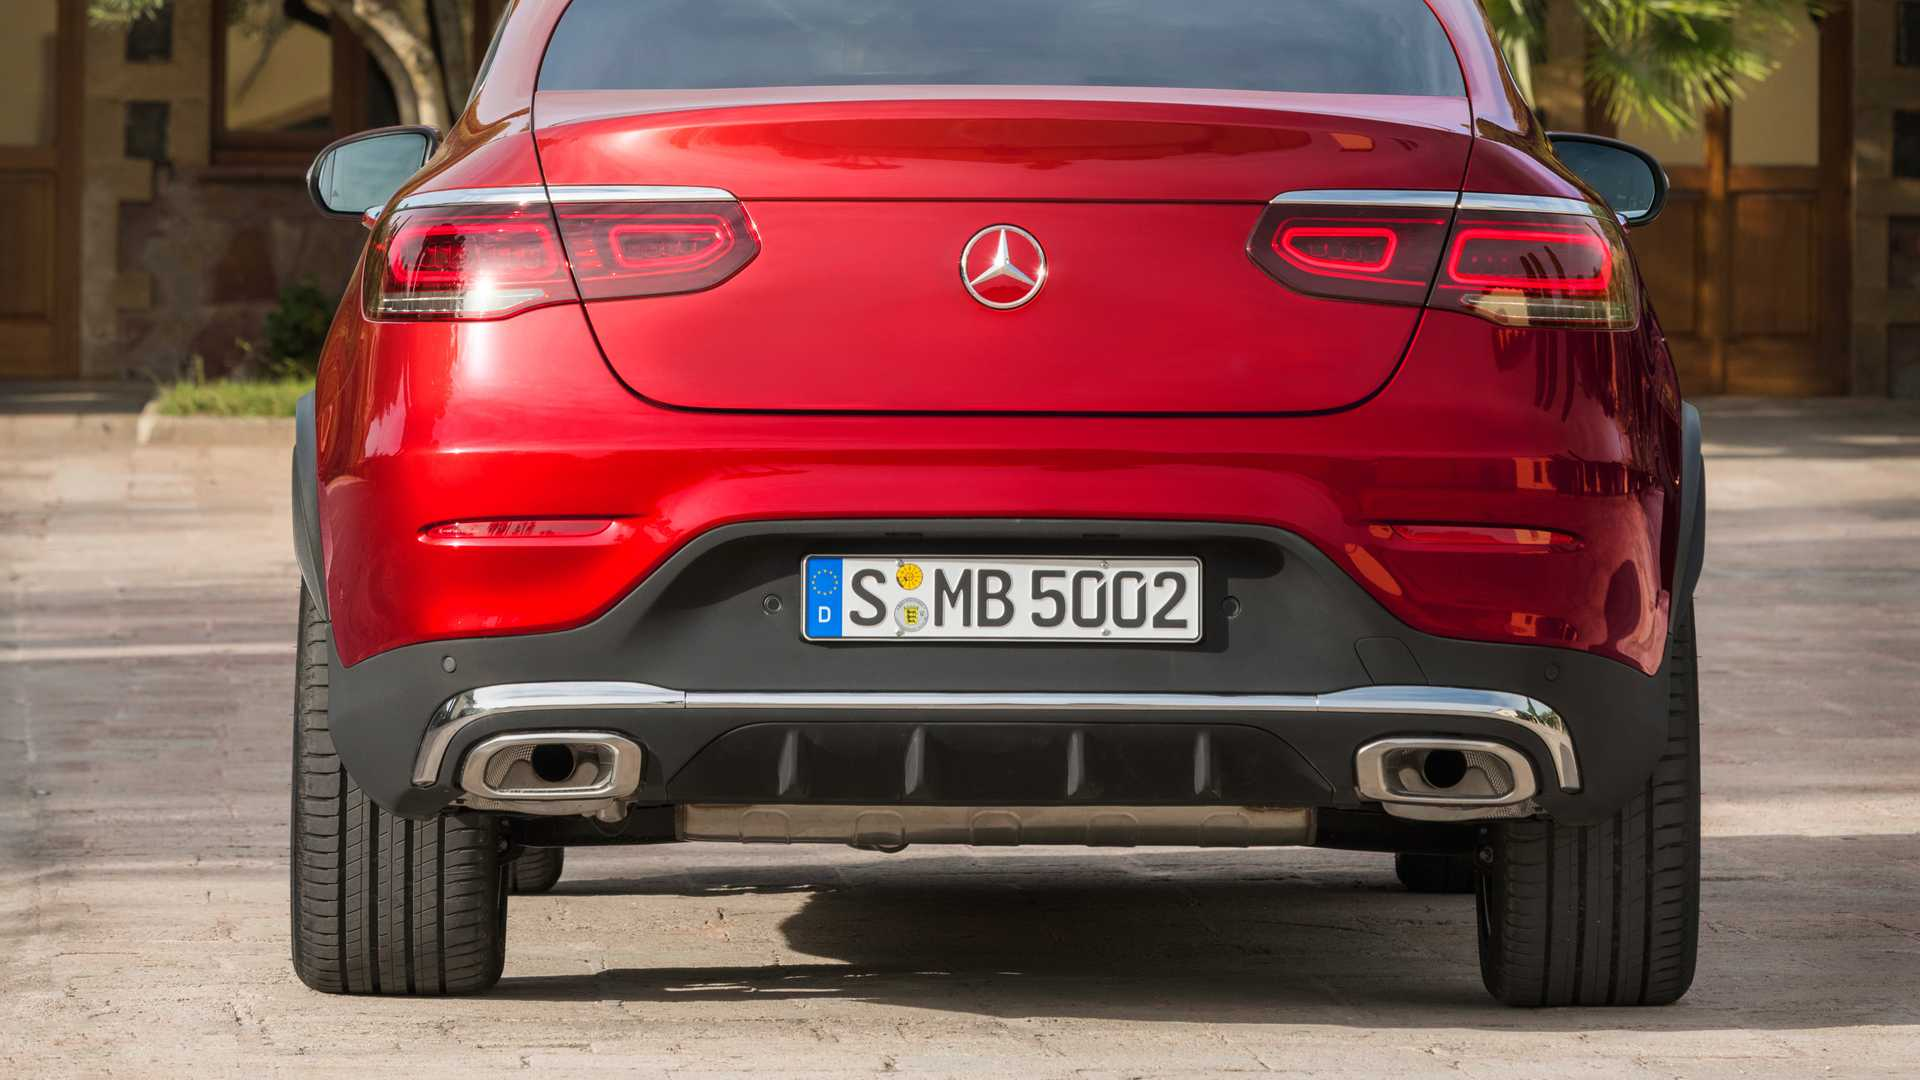 Mercedes Glc Coupe 2019 Rojo 015